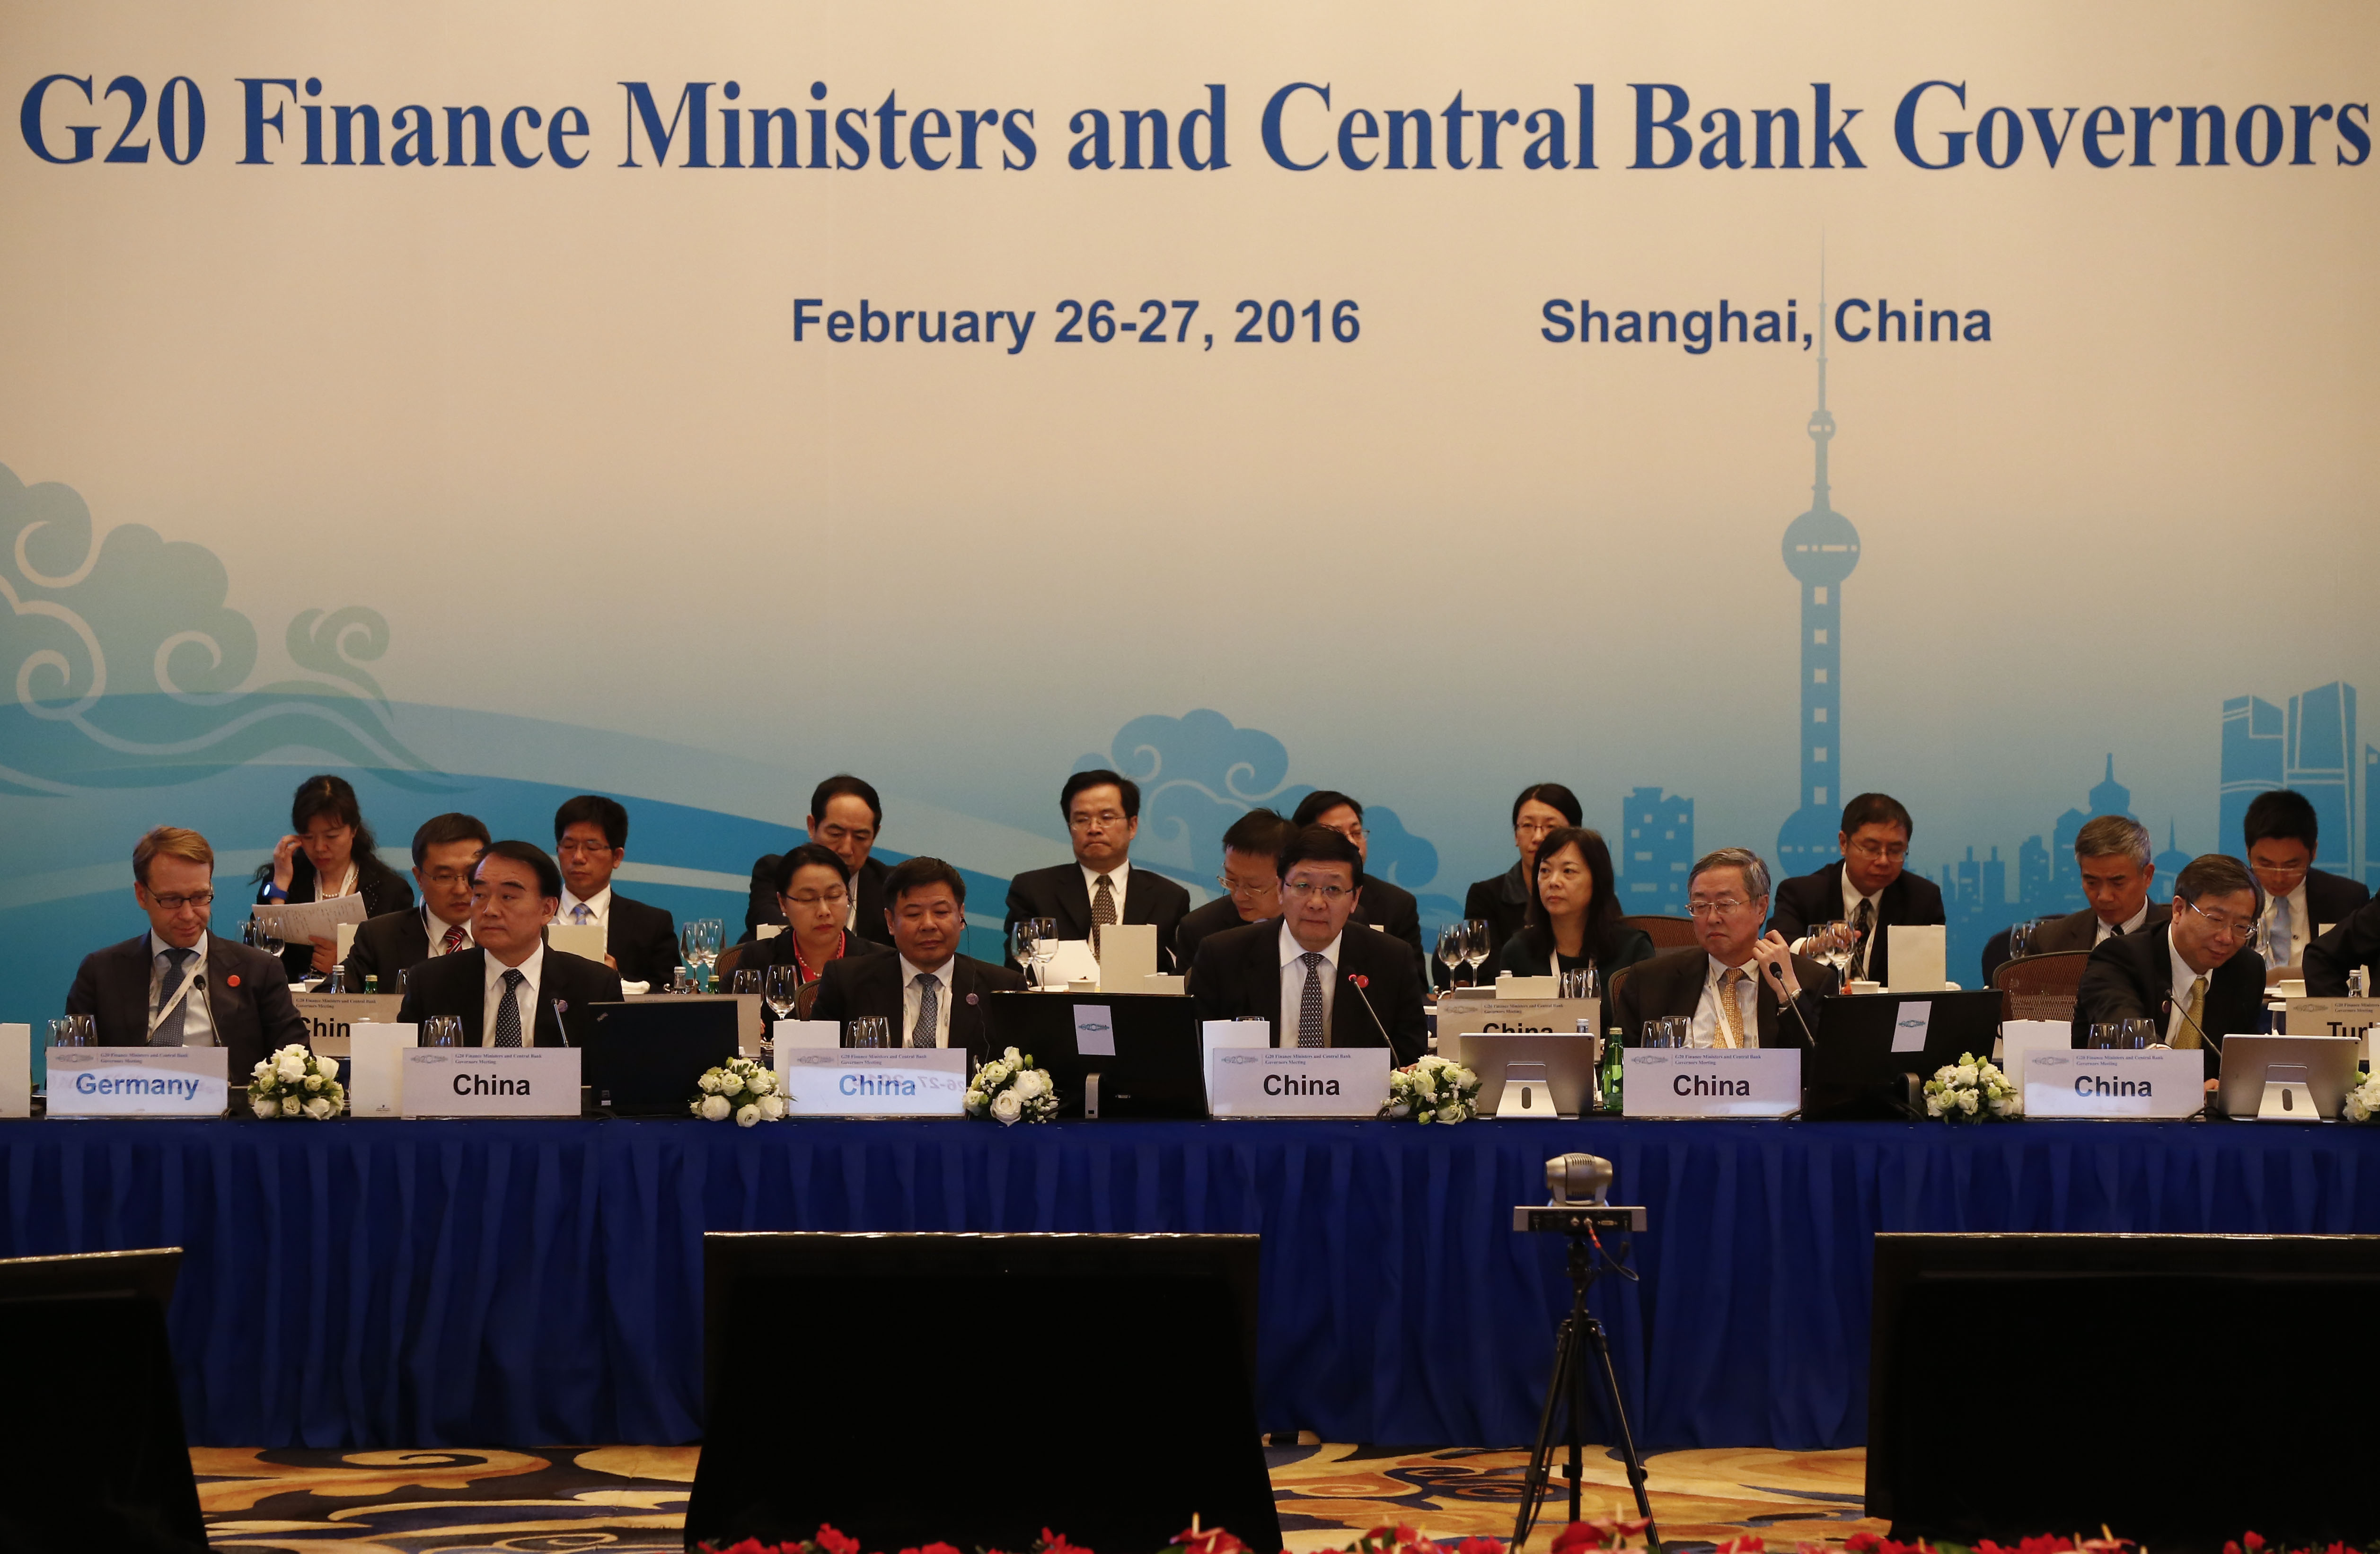 G20 Finance Ministers and Central Bank Governors Meet In Shanghai